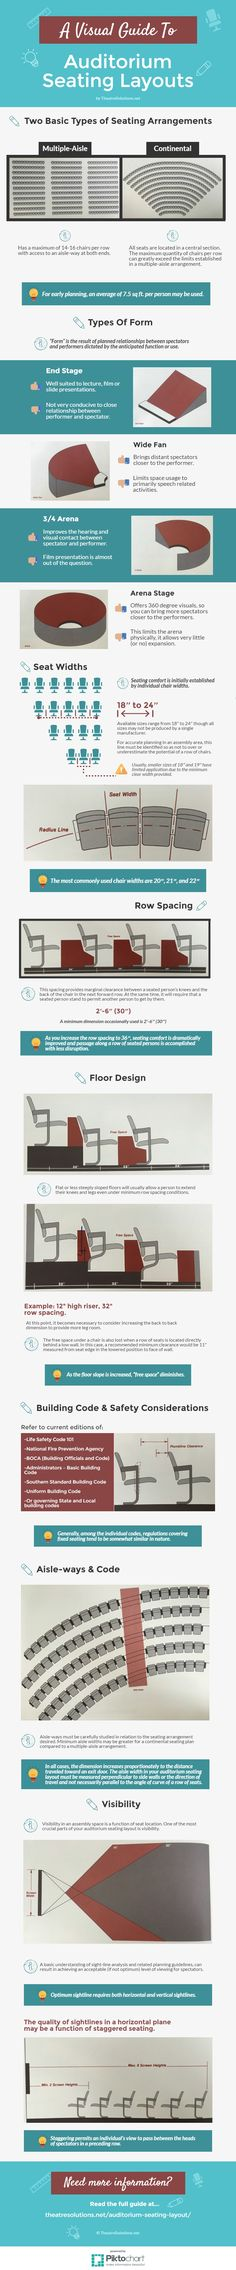 Gallery of 26 Handy Architecture Cheat Sheets  - 14